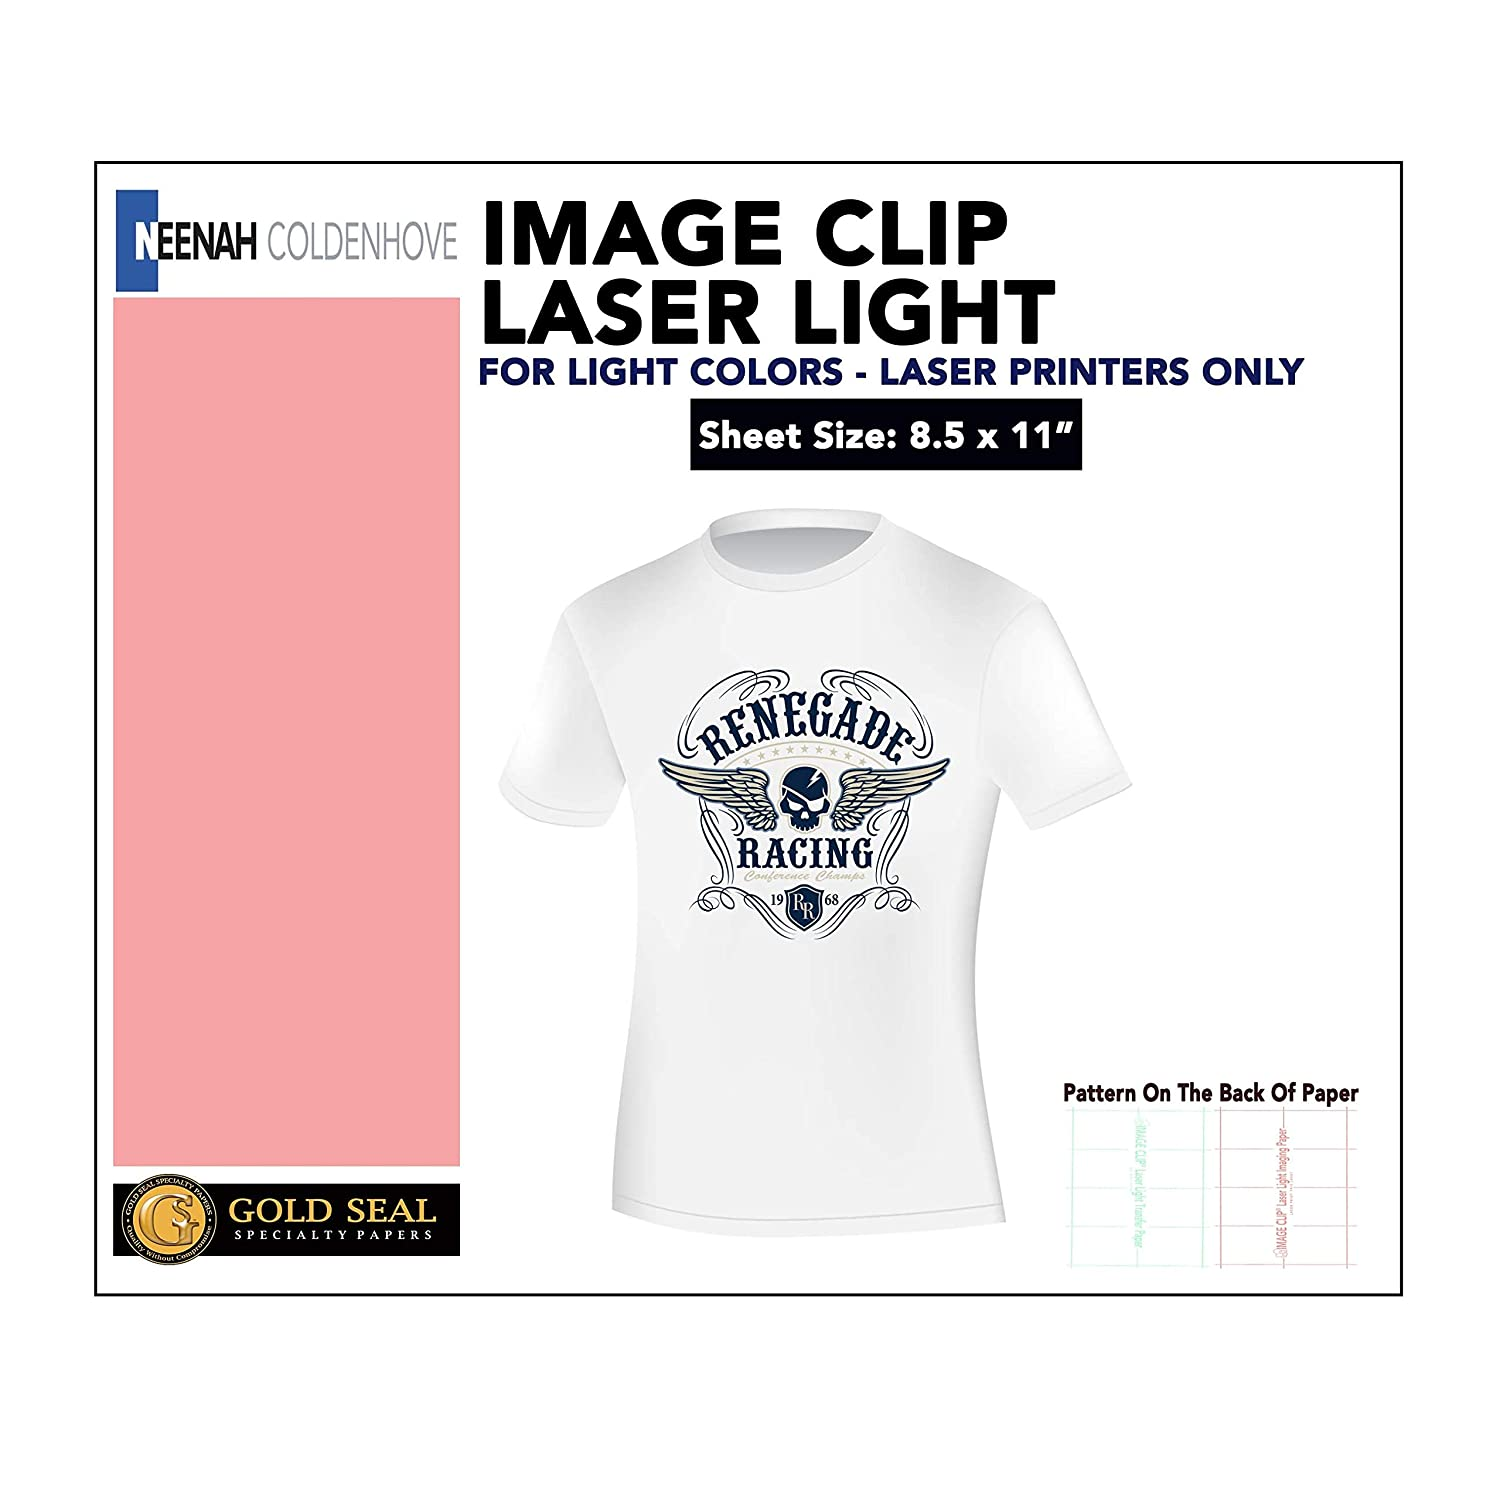 "LASER HEAT TRANSFER FOR DARK FABRIC /""IMAGE CLIP KONCERT-T/'s/"" Self-Weeding"